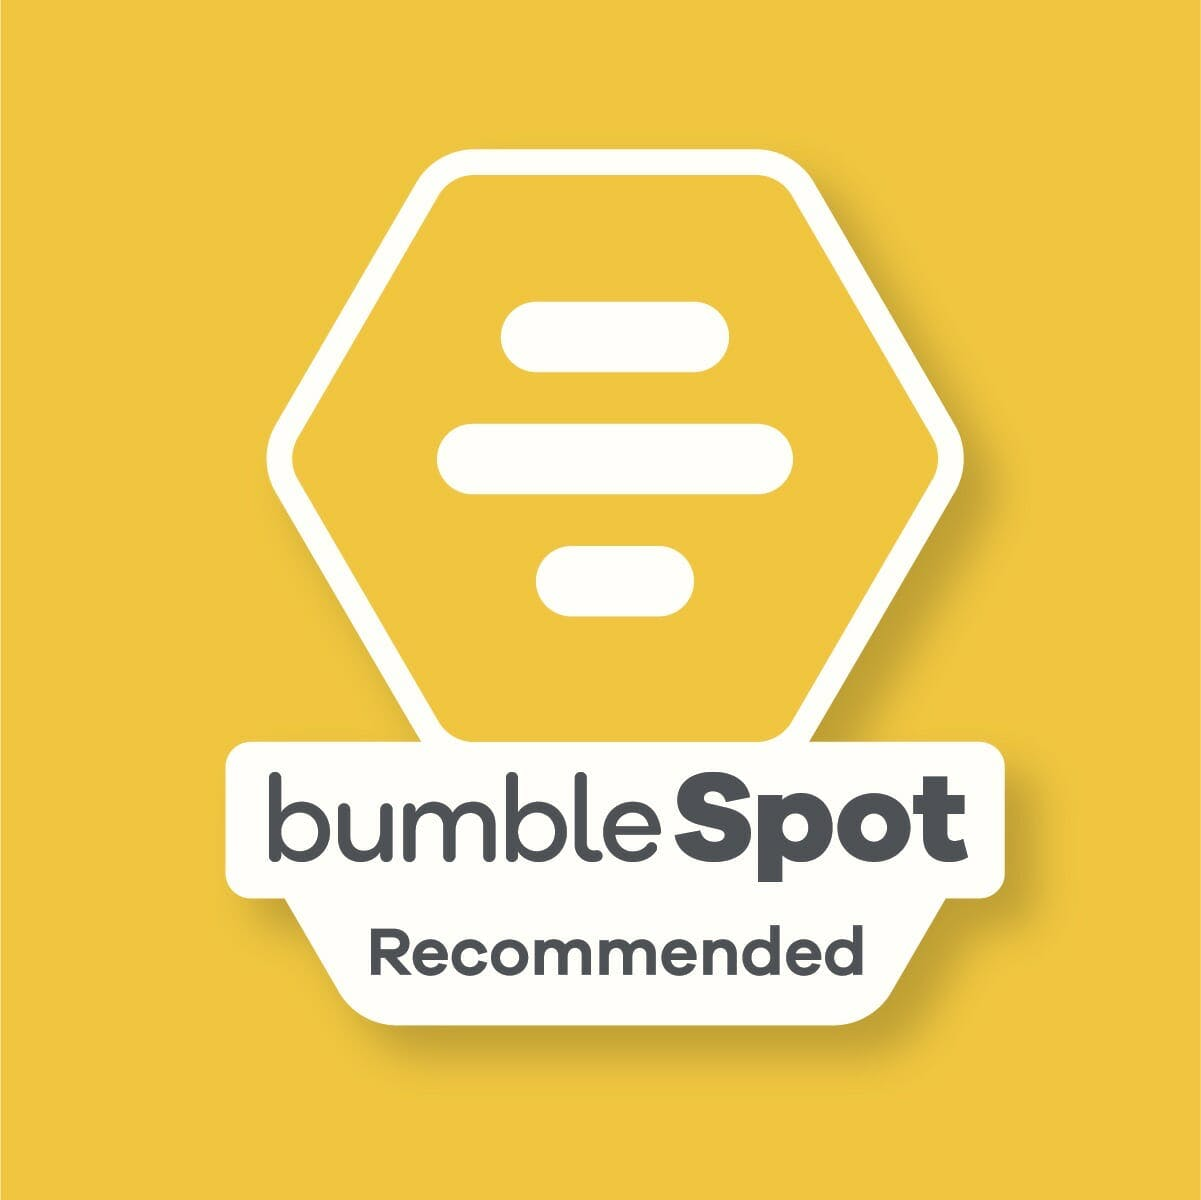 BumbleSpot Recommended